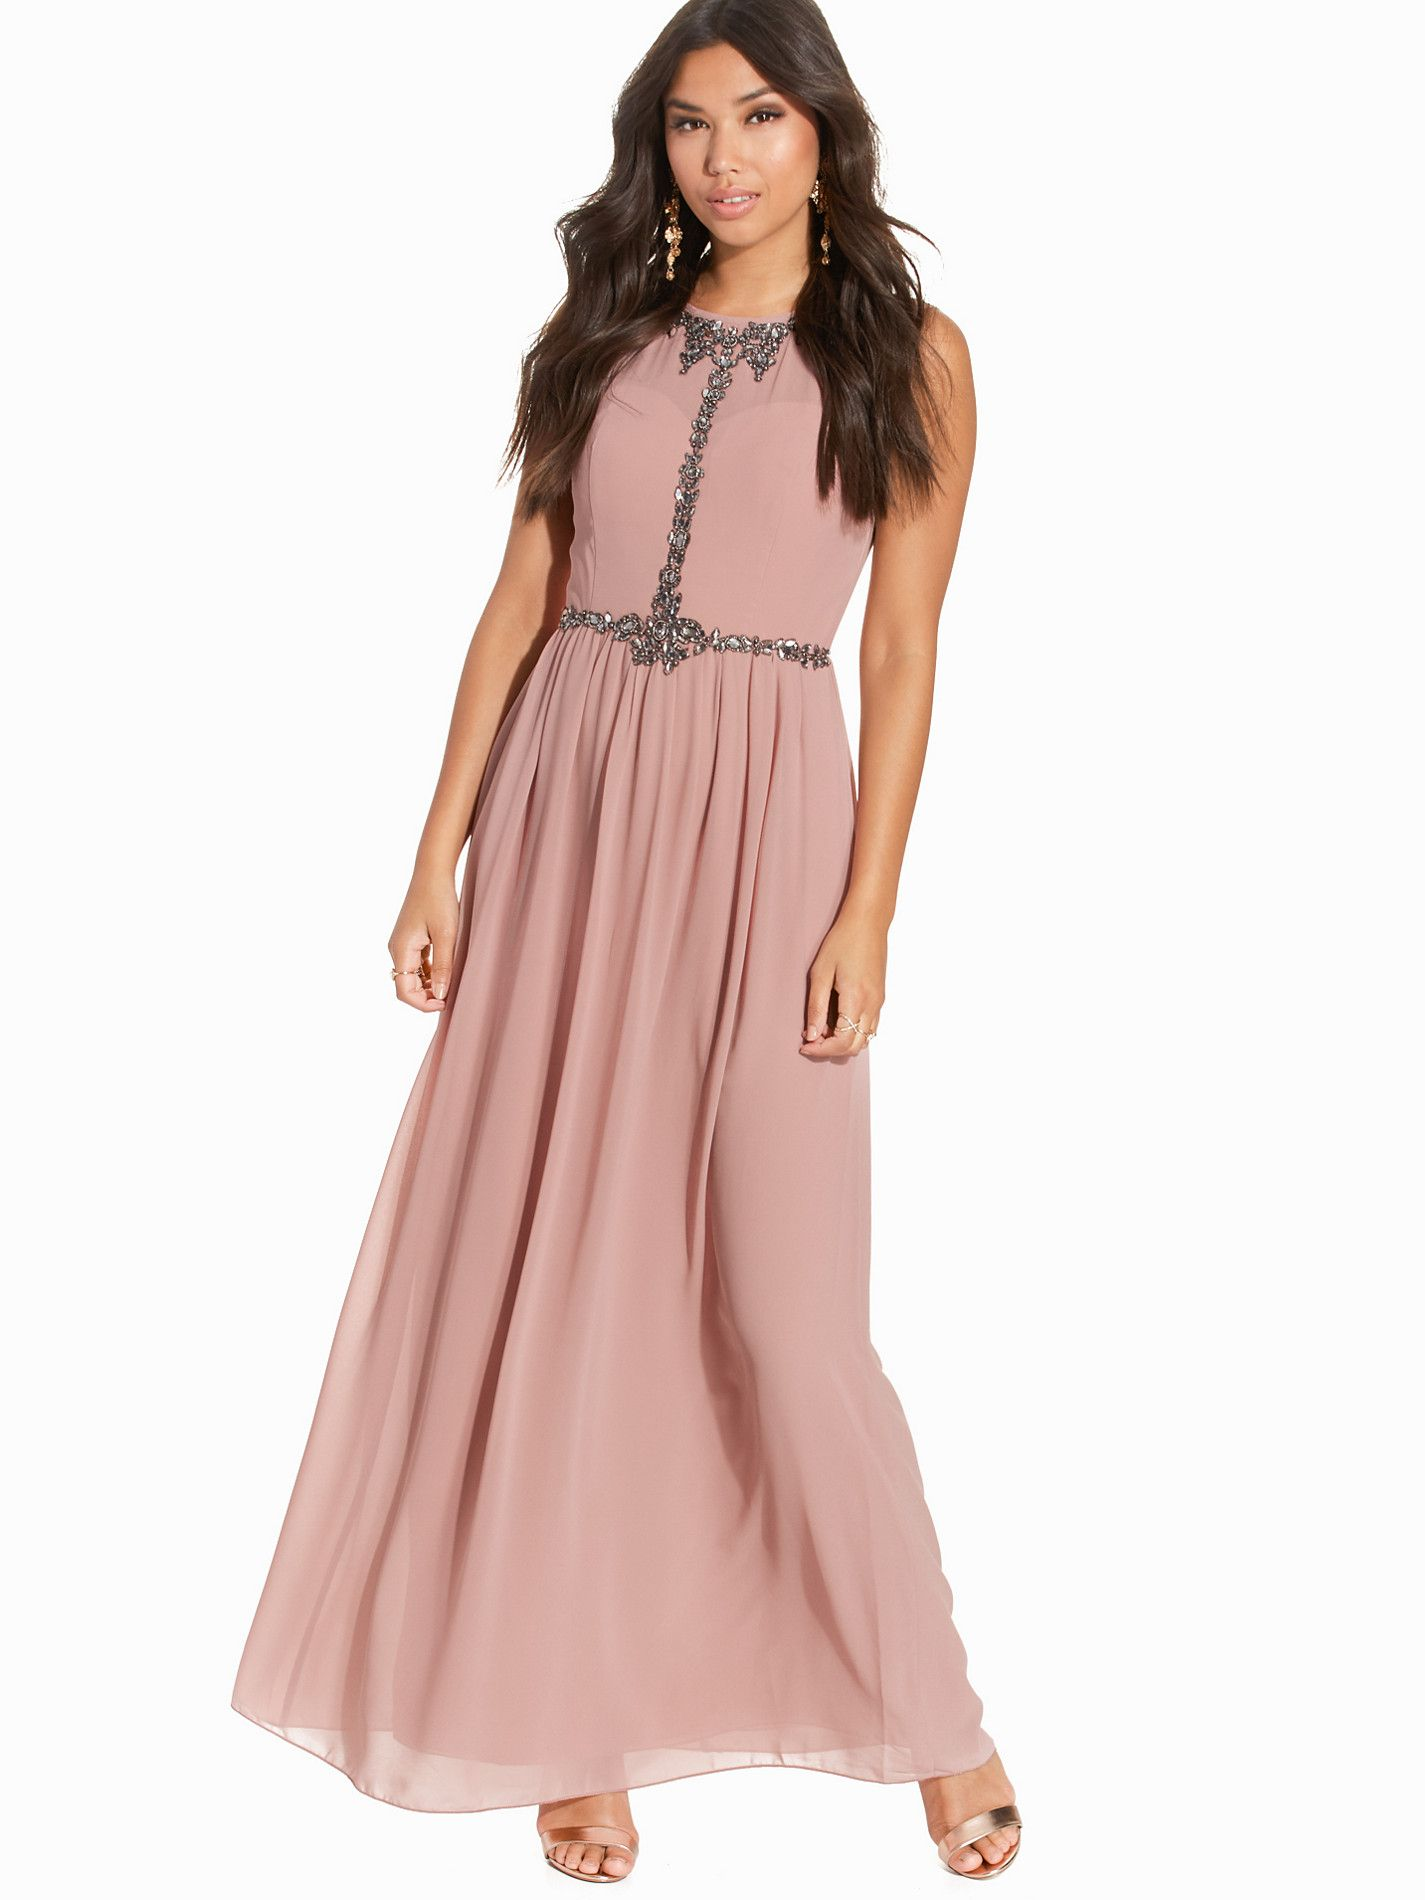 bebfcf892a8 Sheer Embellished Maxi Dress - Little Mistress - Pink - Juhlamekot -  Vaatteet - Nainen - Nelly.com